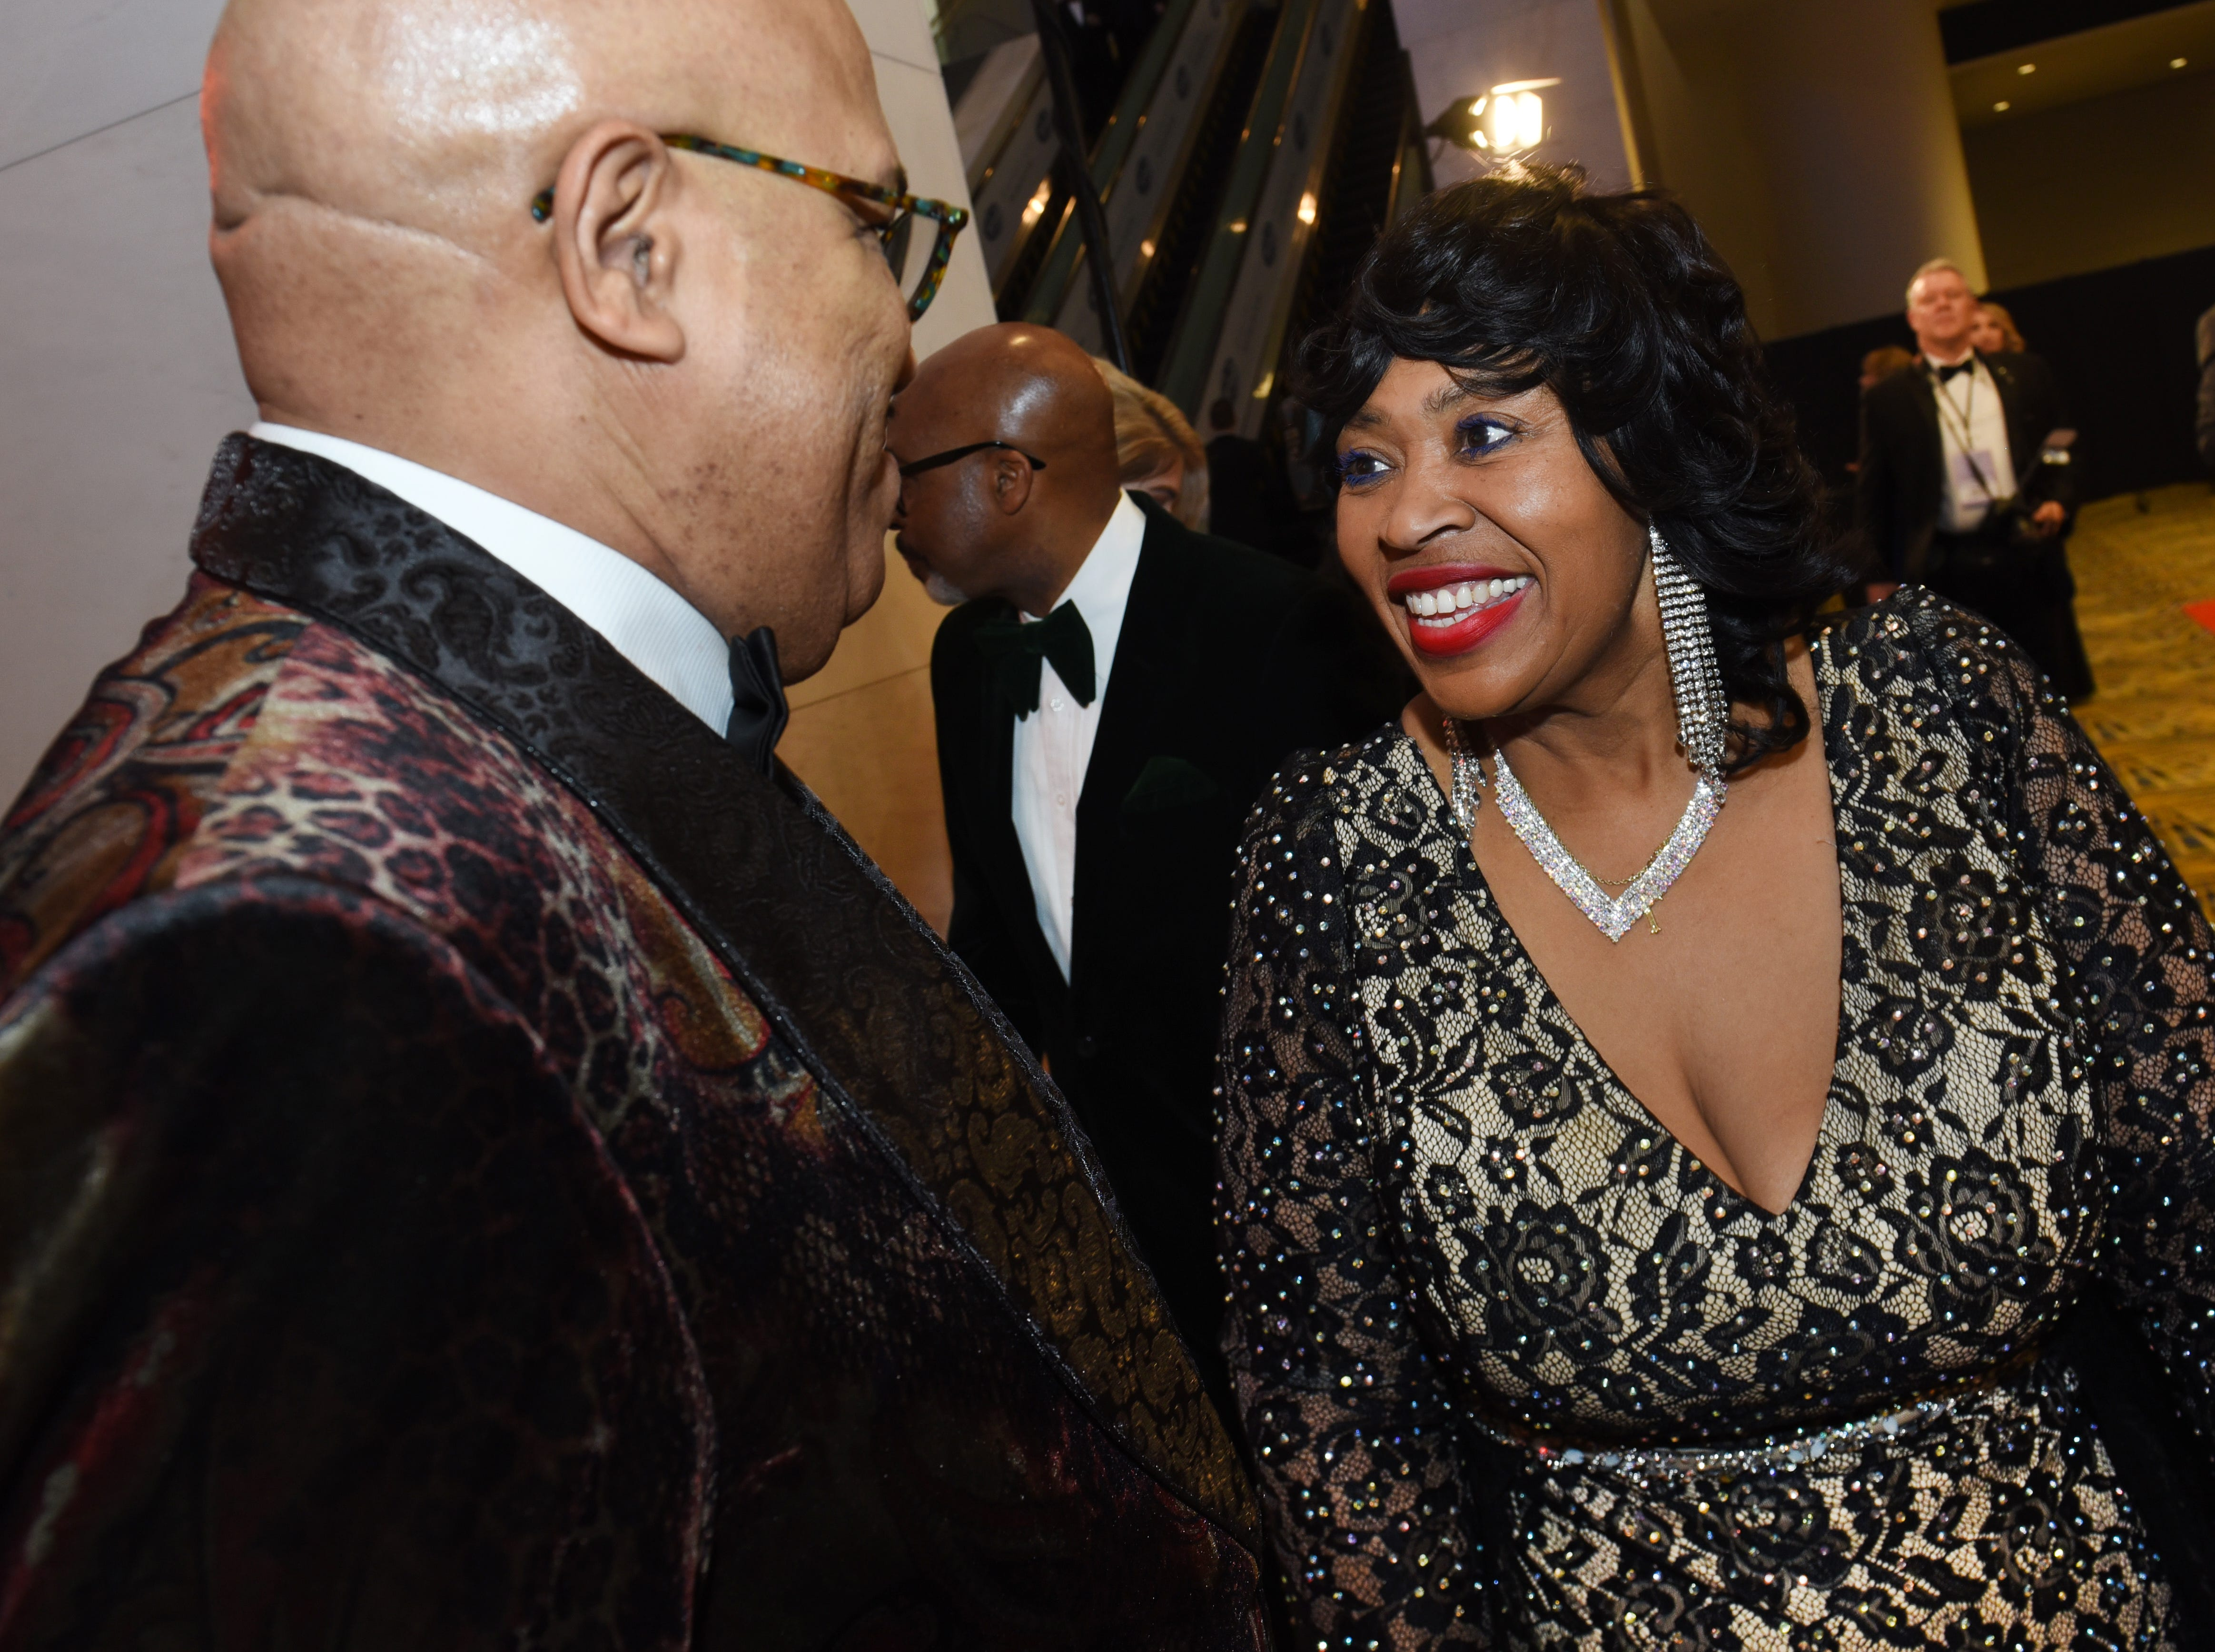 Detroit City Council President Brenda Jones attends the Charity Preview gala.